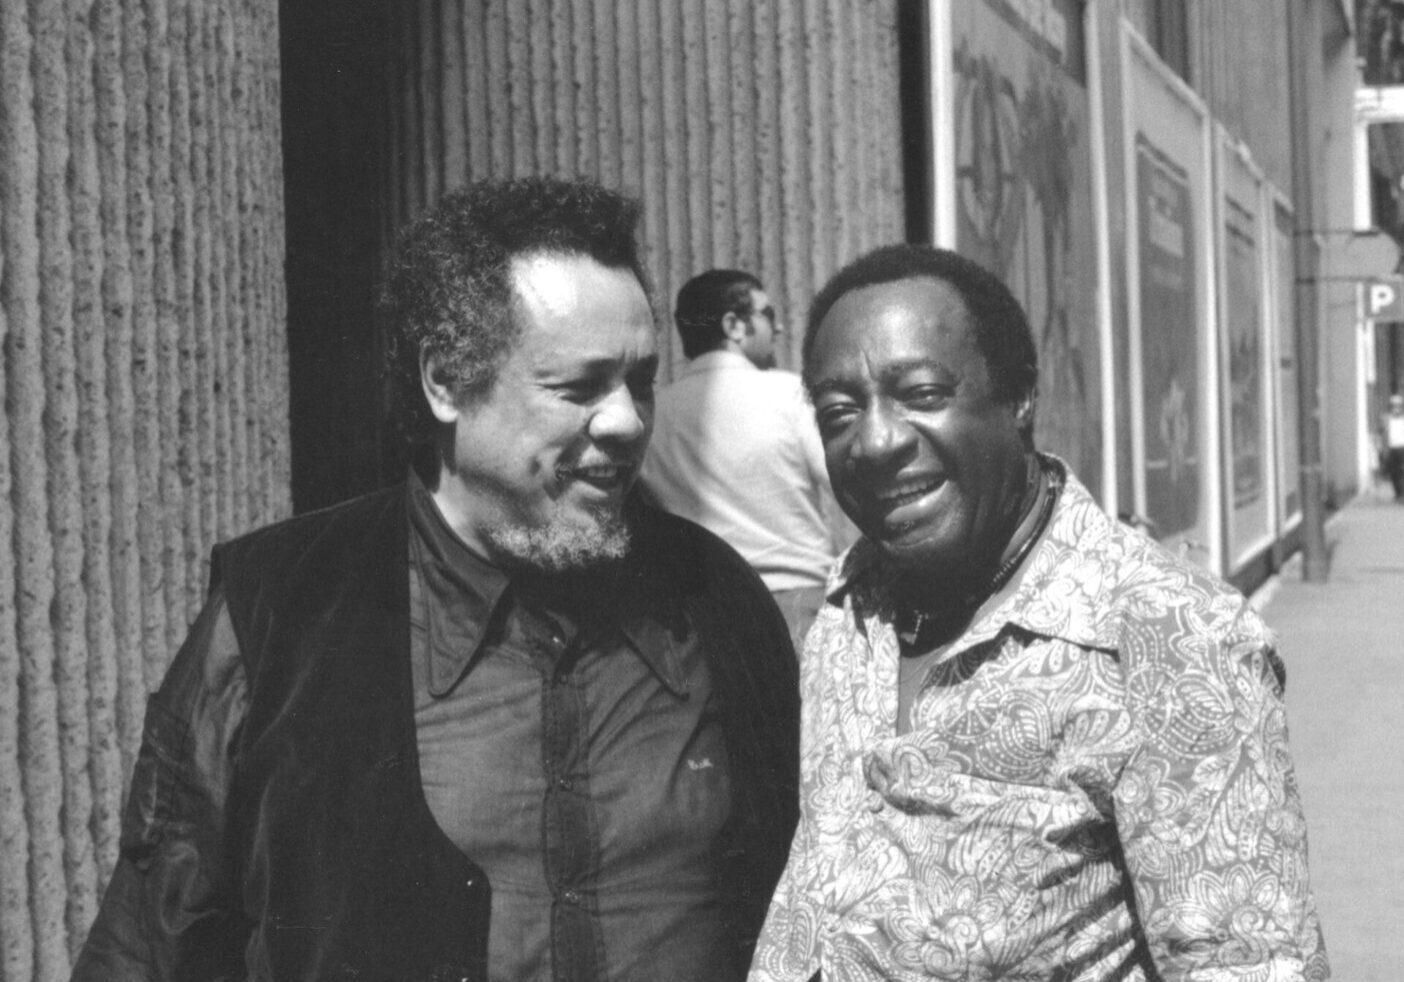 Charles Mingus with Milt